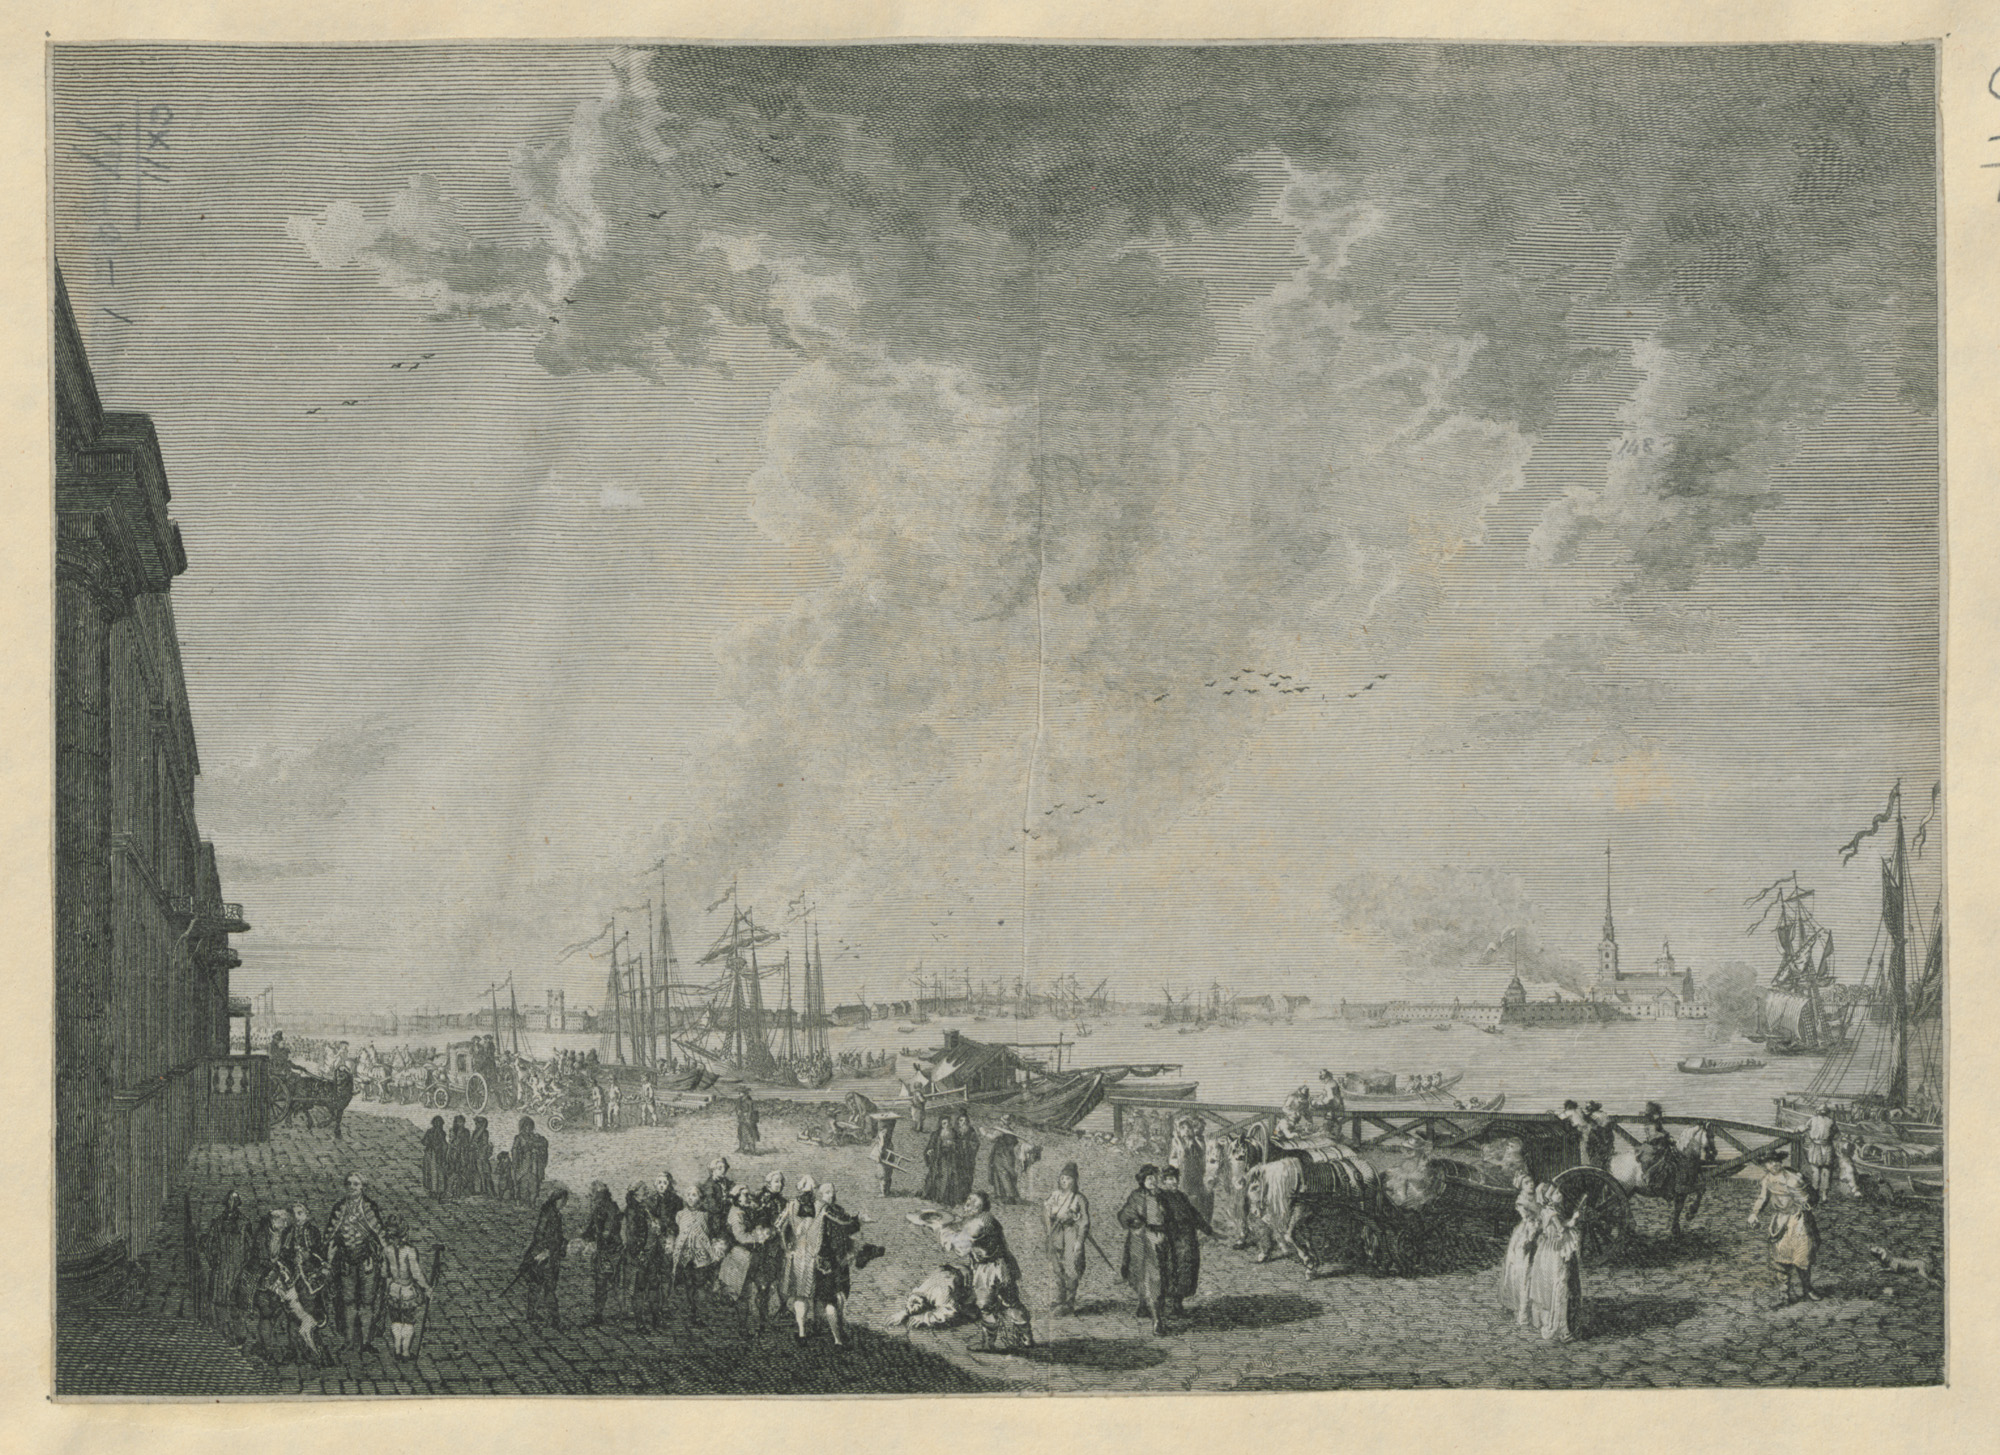 print showing the Neva River in St Petersburg